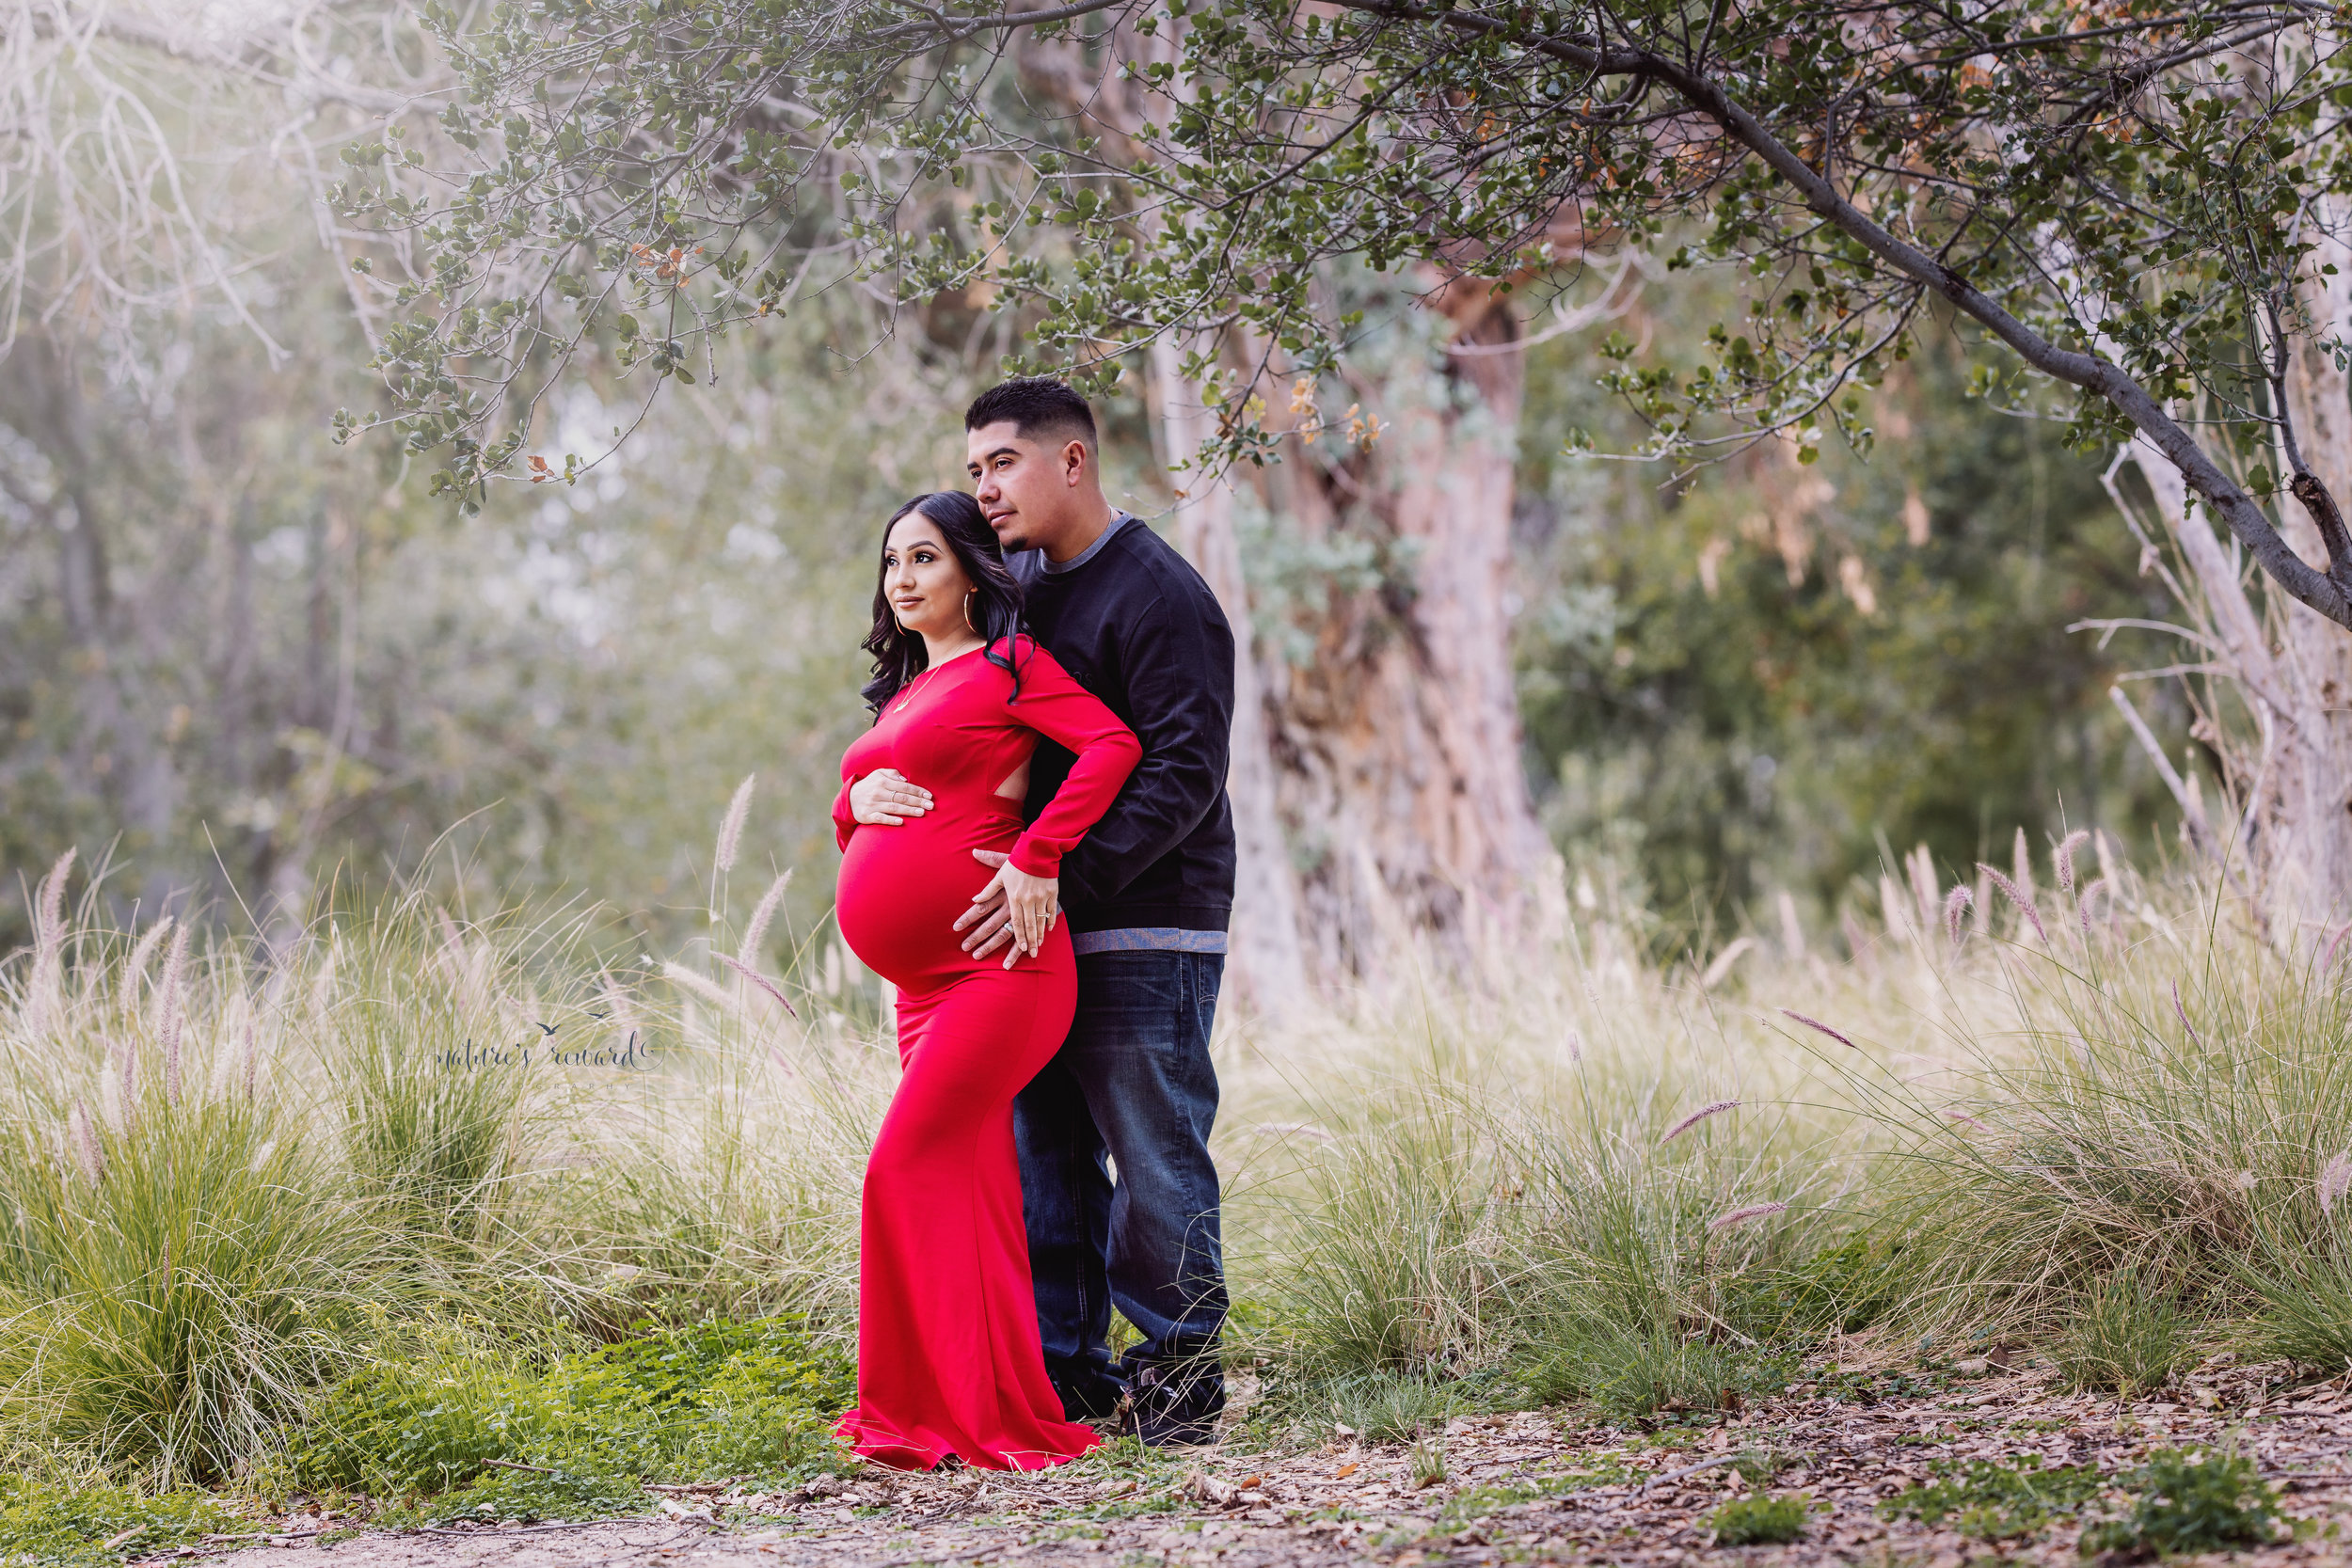 Looking towards the next chapter of their lives in this beautiful maternity portrait of mom to be in a beautiful red maternity gown and her husband in dark wash jeans and long sleeve shirt in this portrait by San Bernardino Based Photographer Nature's Reward Photography.